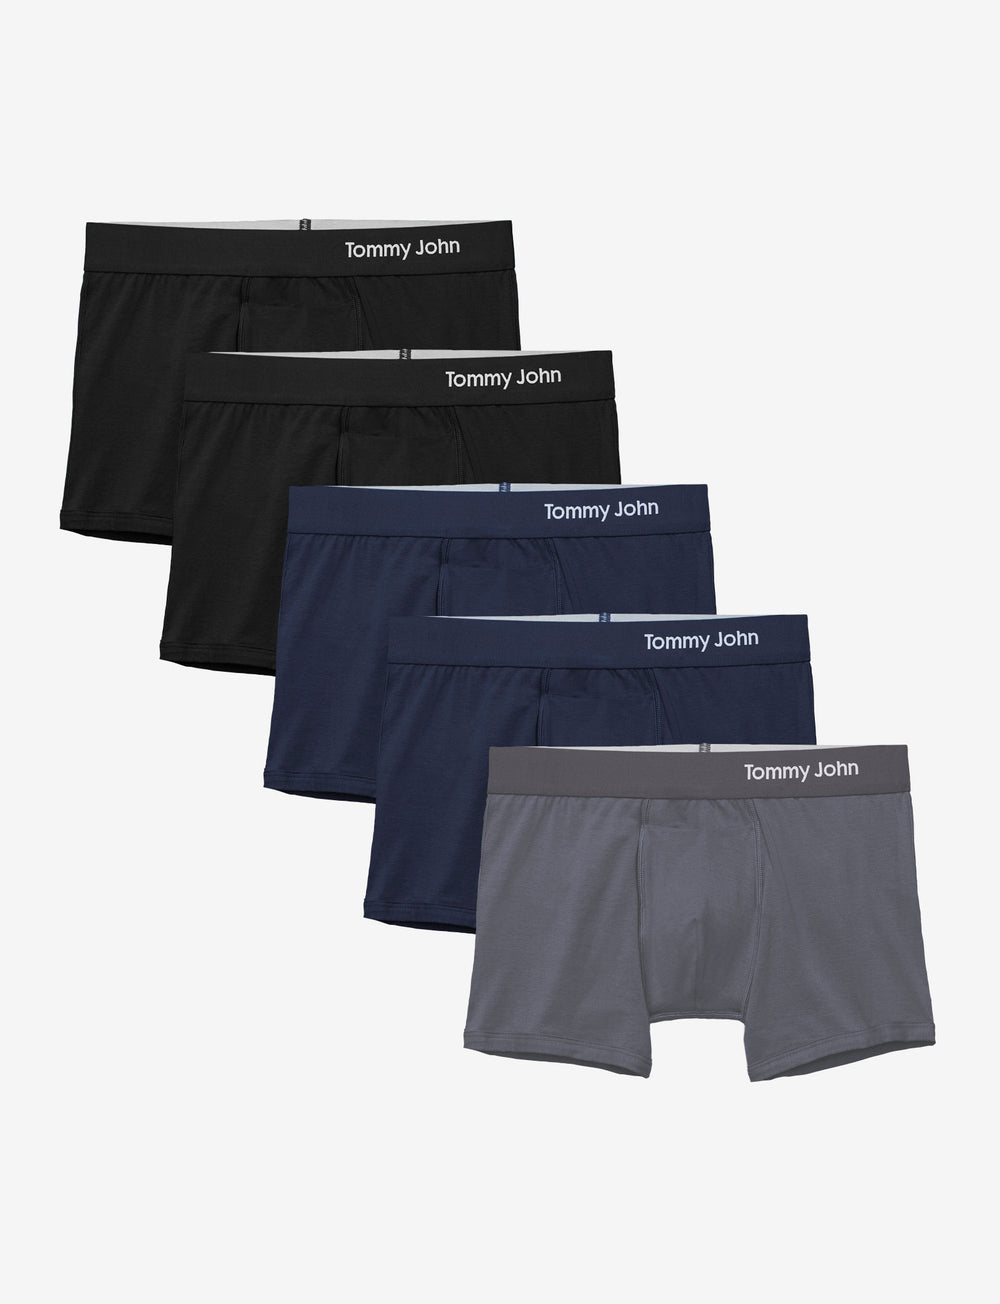 Cool Cotton Trunk 5 Pack Details Image